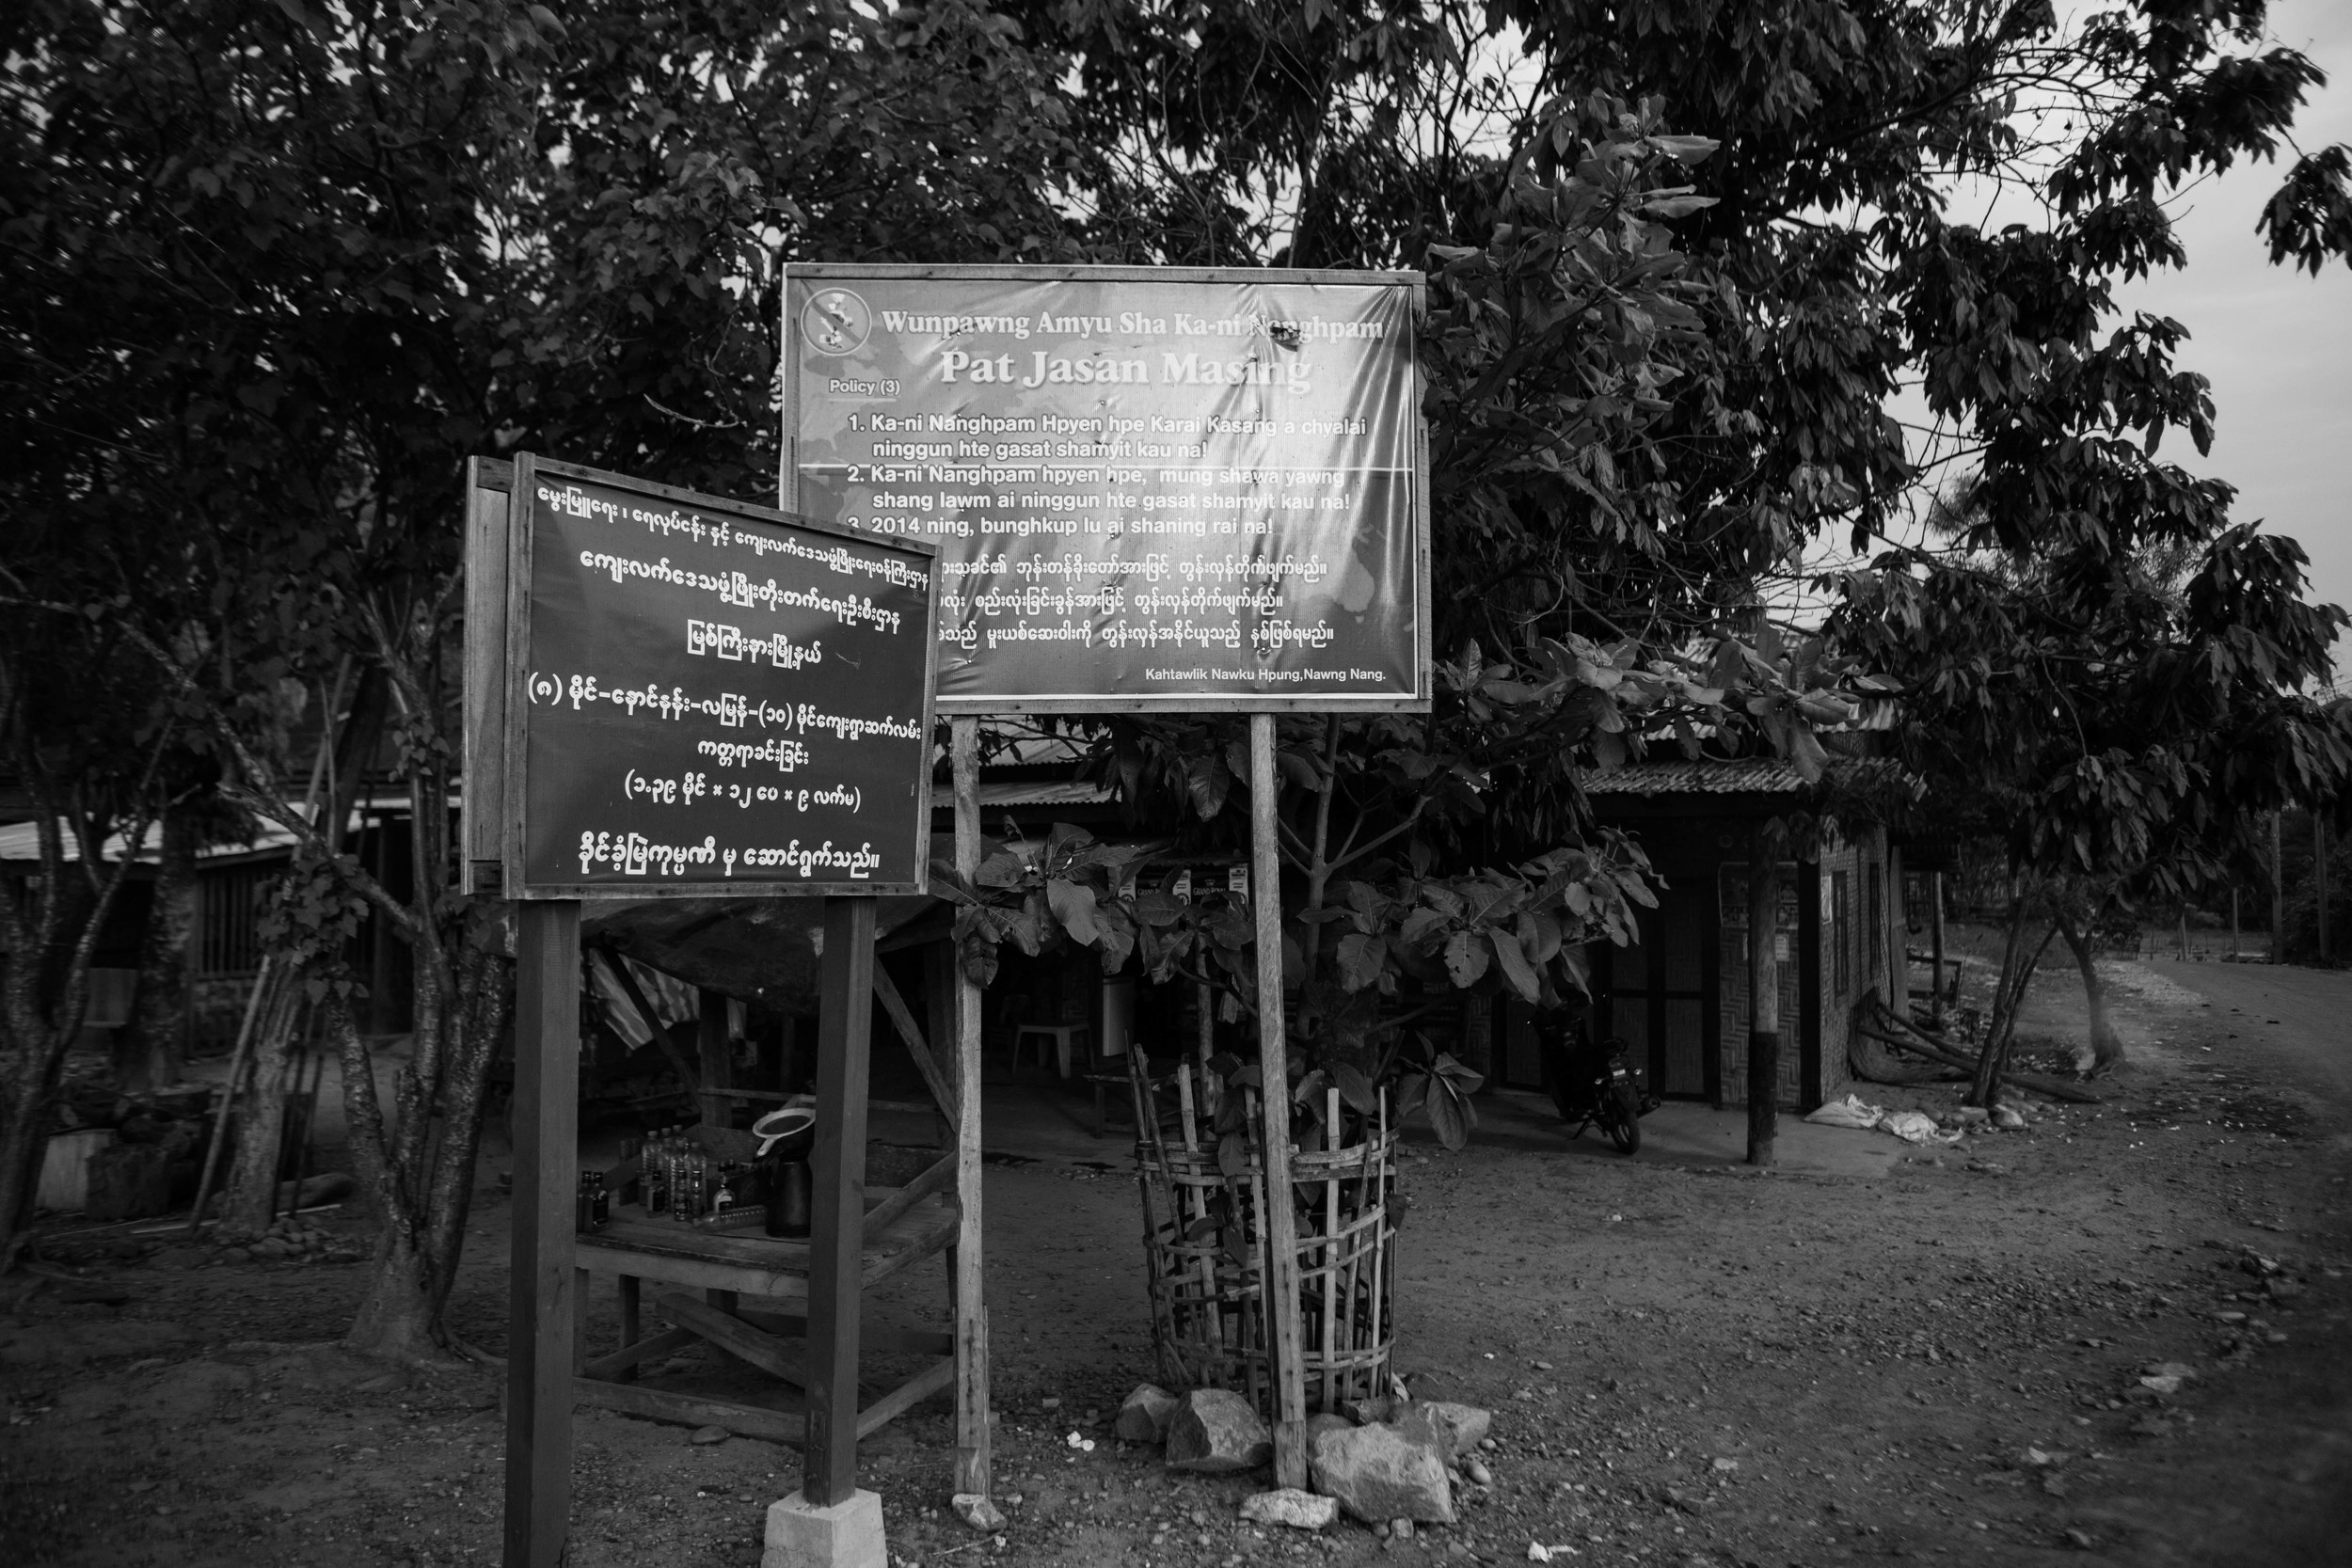 Signs like these popped up around Myanmar's northern city of Myitkyina and surrounding villages last year. They announce a mission to wipe out drugs. The Patjasan program is a collaboration between the Kachin Baptist and Catholic church.